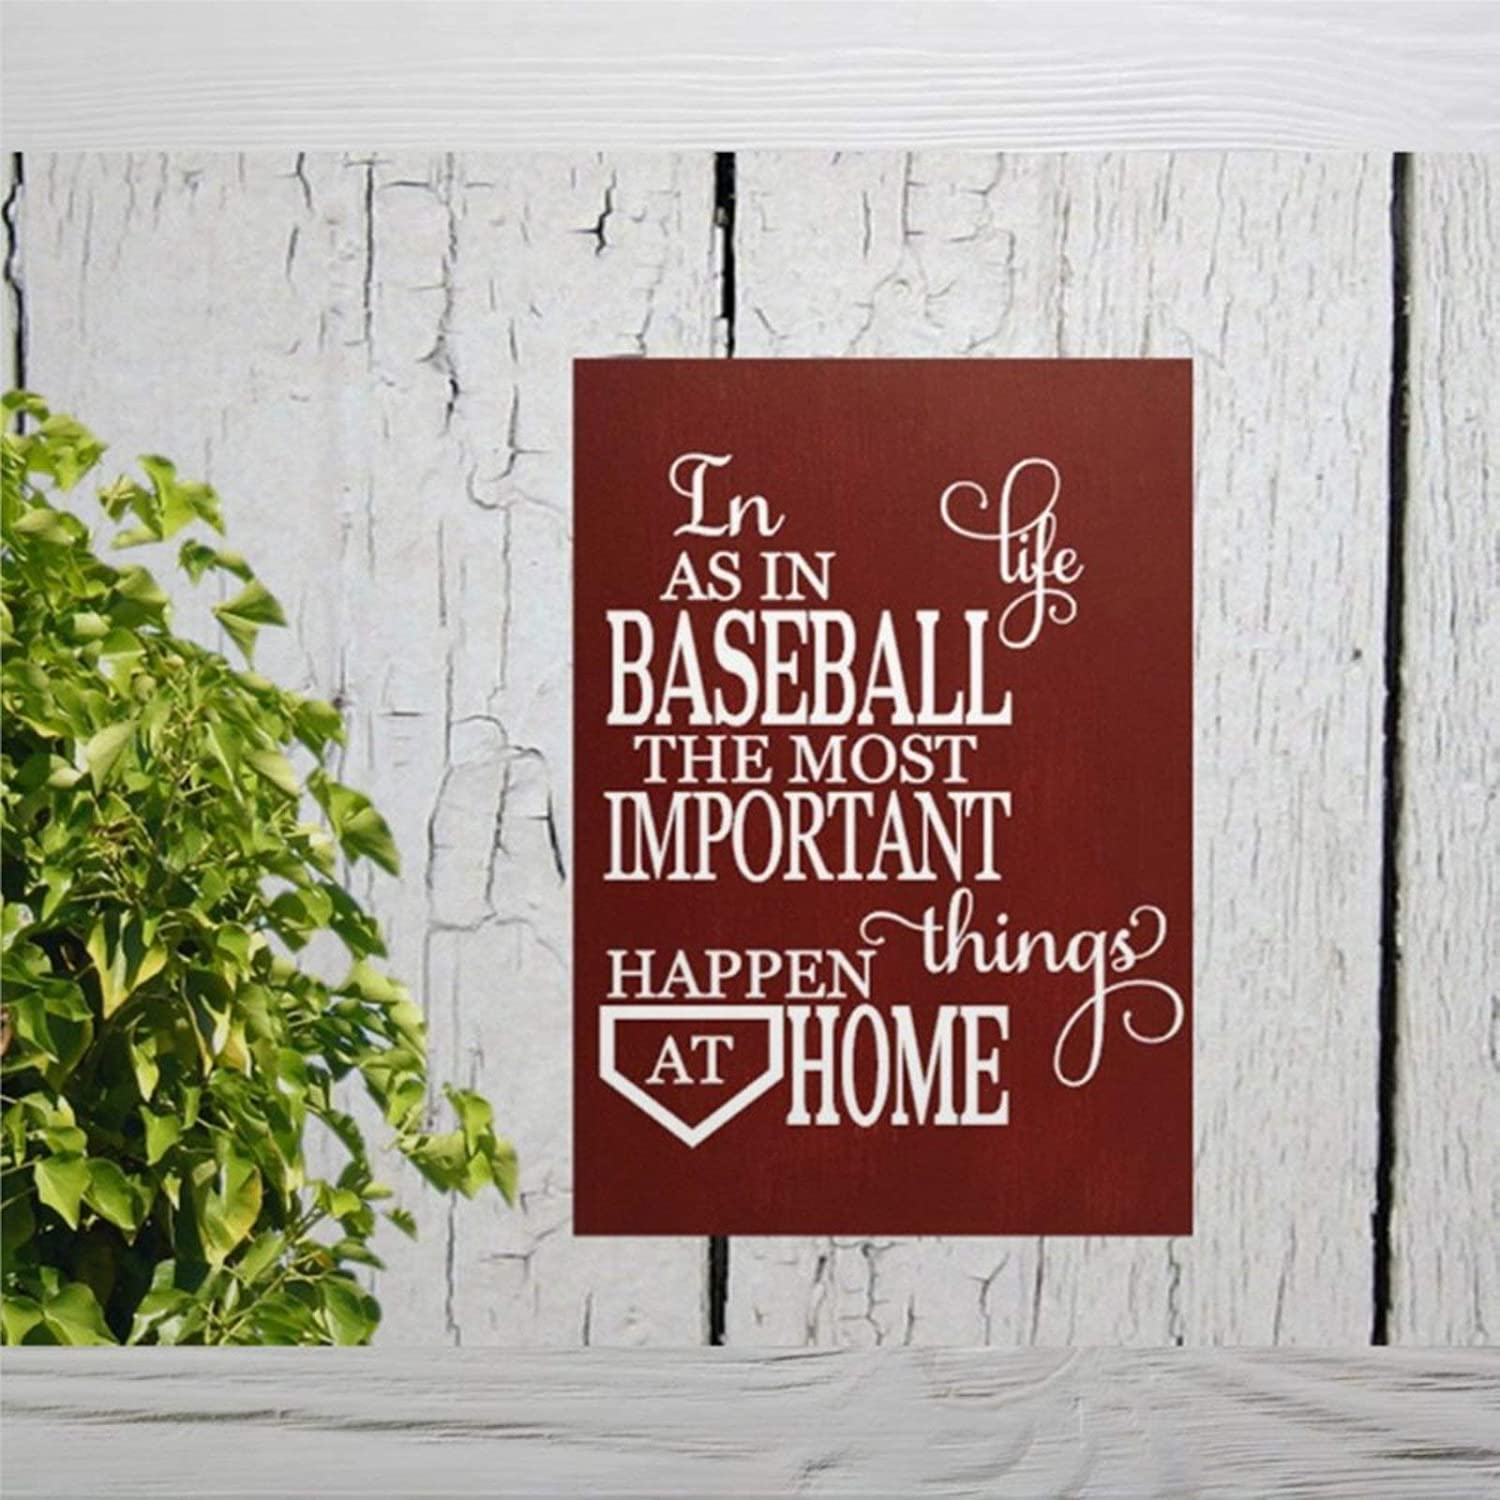 DONL9BAUER Wooden Plaque Sign, Baseball Sign. in Life As in Baseball The Important Things Happen at Home Wood Wall Decor Art, Farmhouse Rustic Mural Wood Pallet Perfect for Home Bar Office